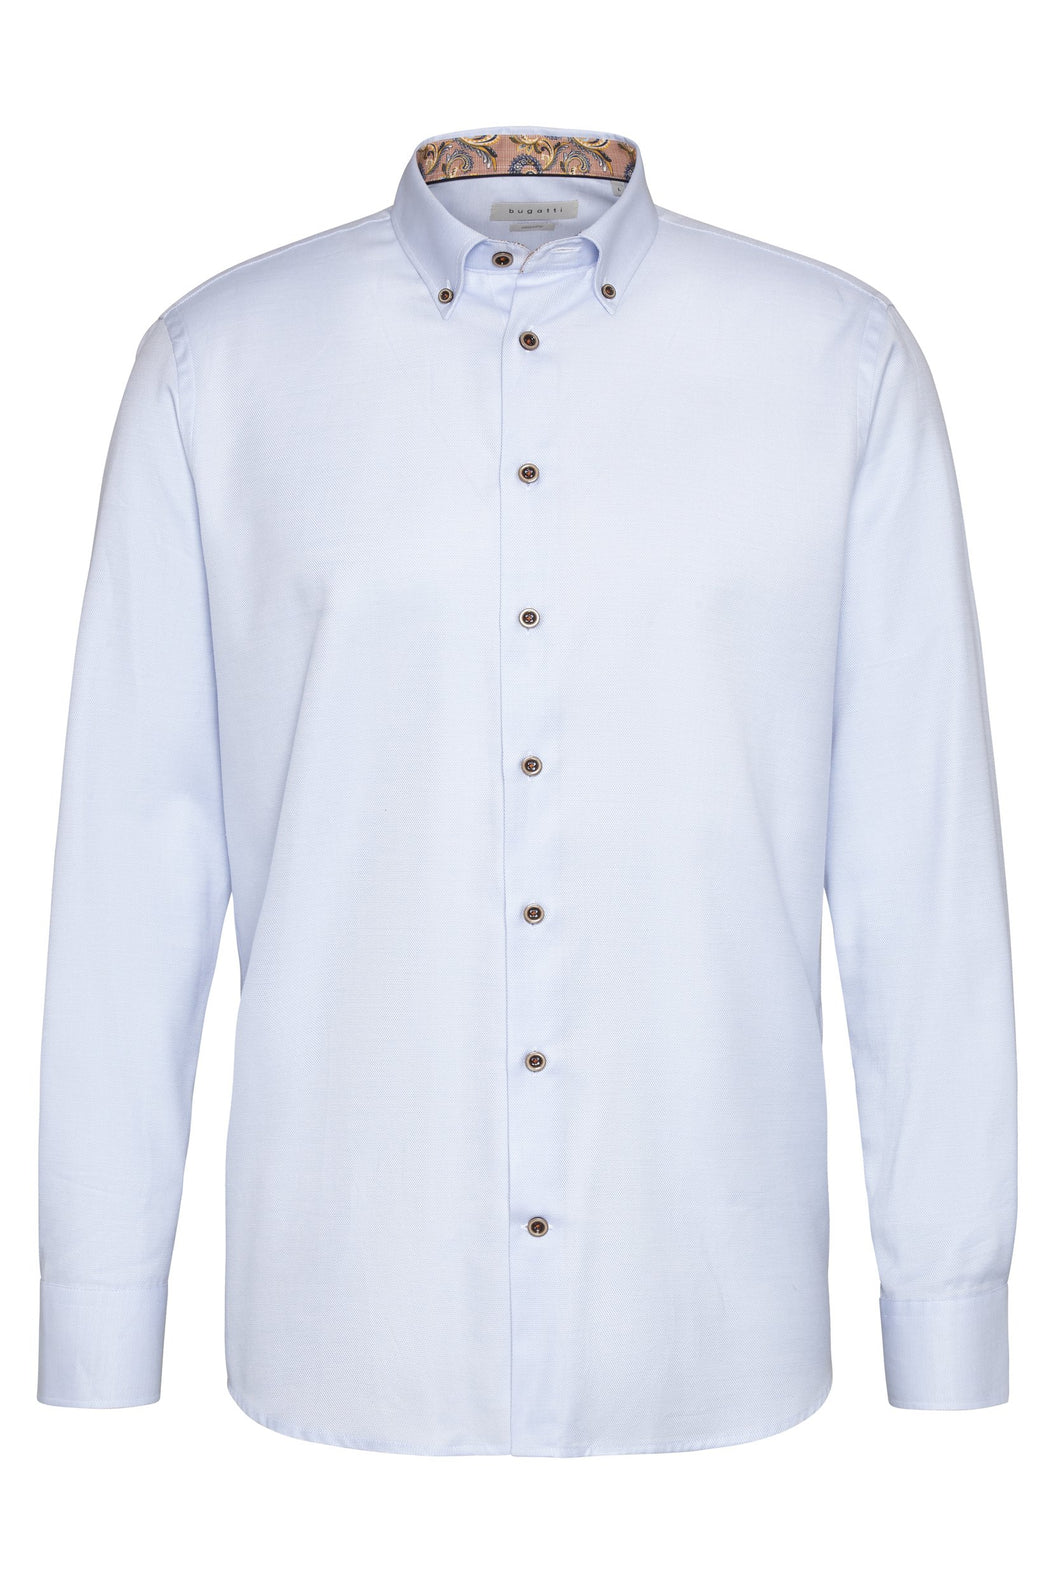 Bugatti - Casual Blue Shirt with floral trim - Tector Menswear